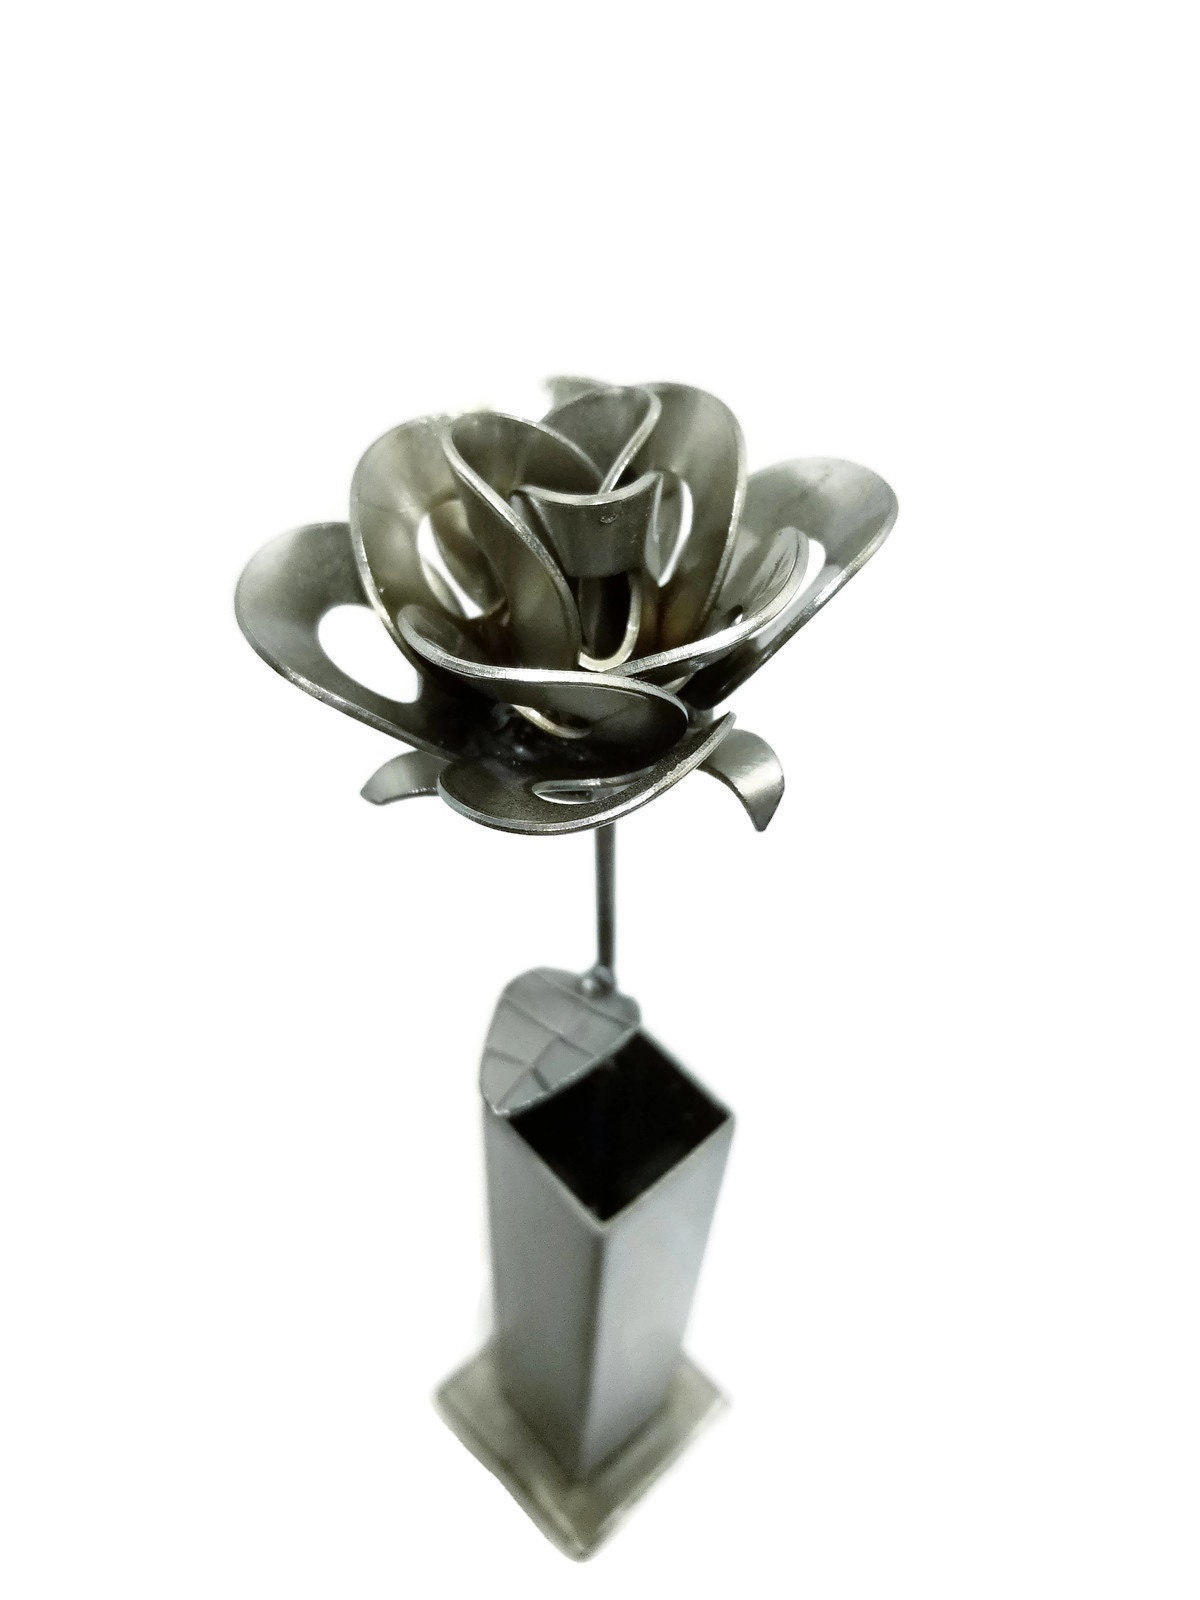 Metal Steel Forever Rose And Vase Created By Welding Scrap Steampunk Style Making Unique Gifts Modern Rustic Home Decor